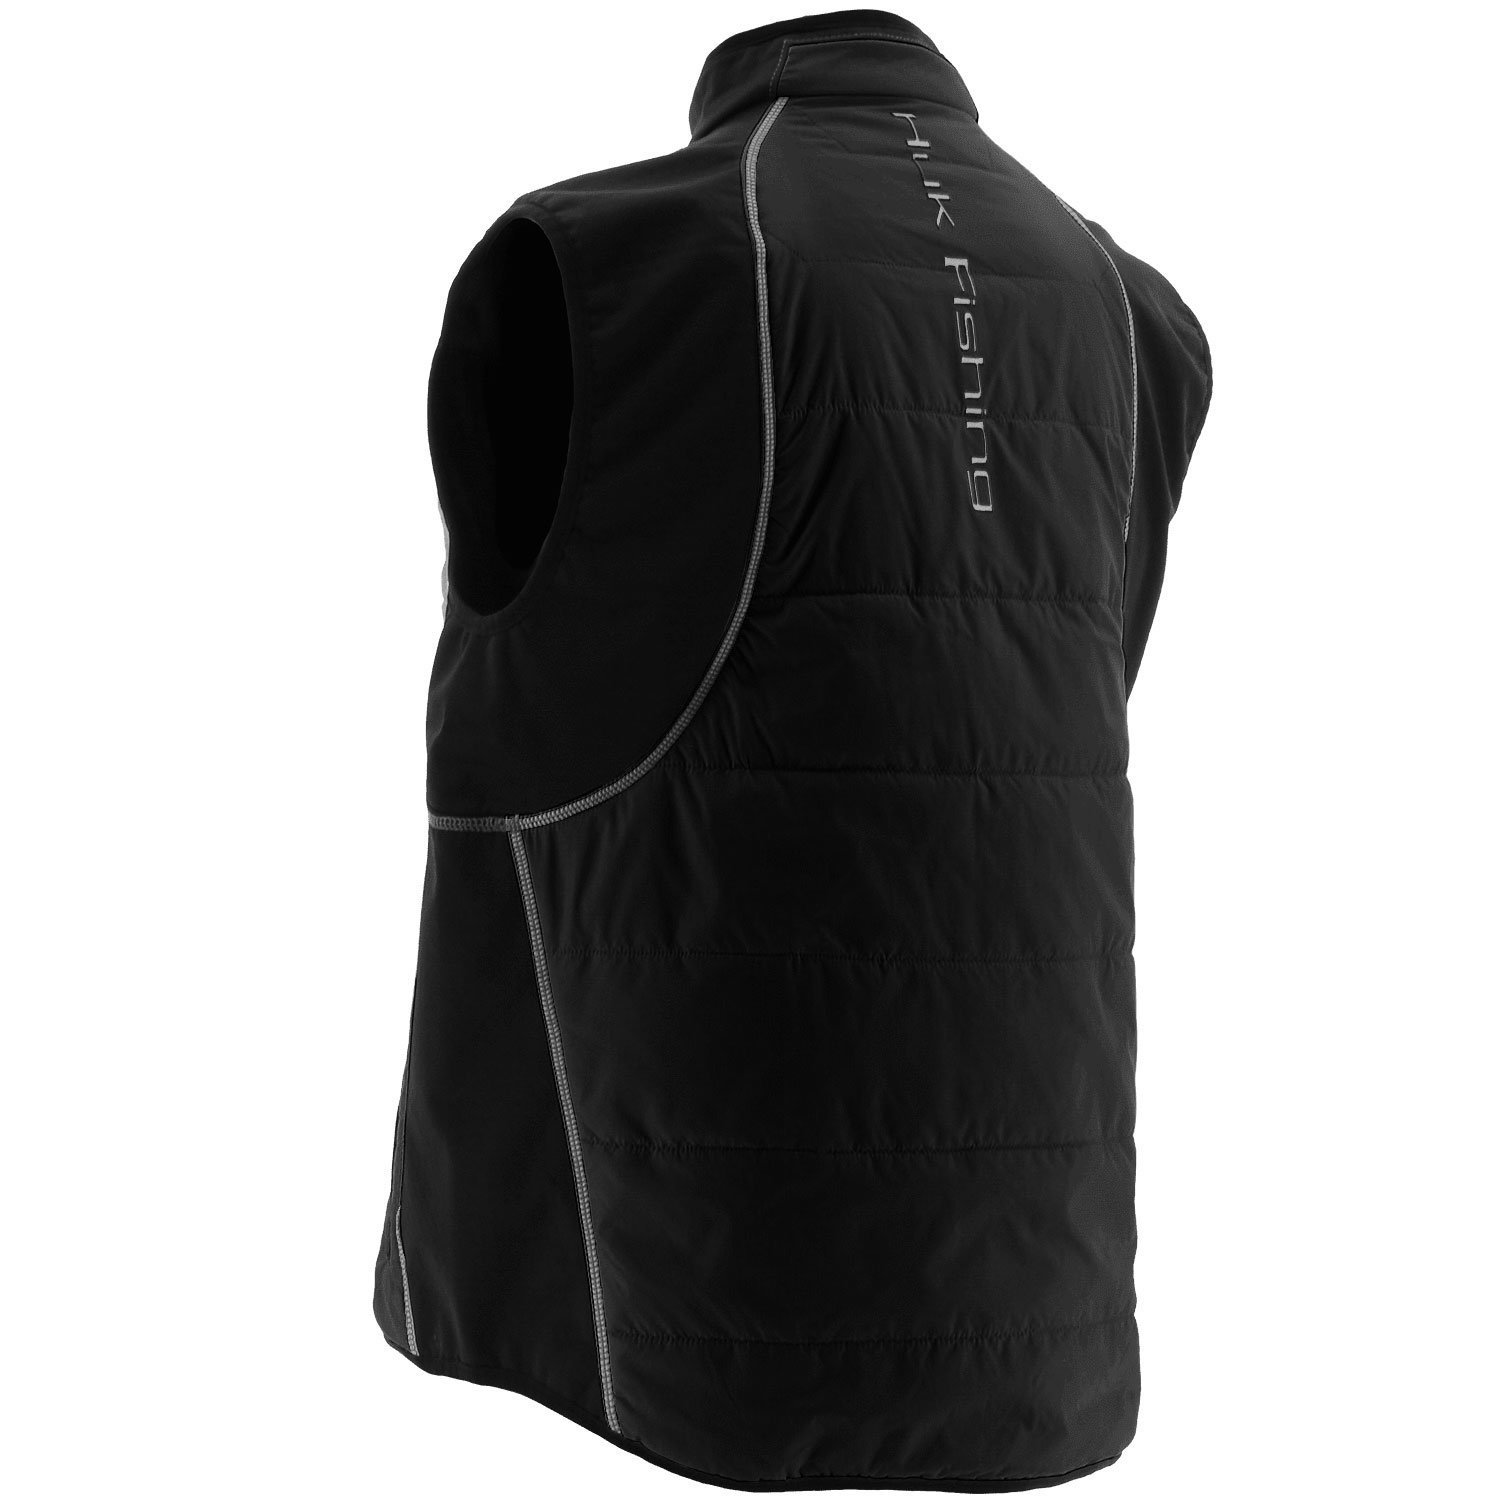 9be2d2aca3a4e Huk Men's Tetra Vest, H4000009 at Amazon Men's Clothing store: